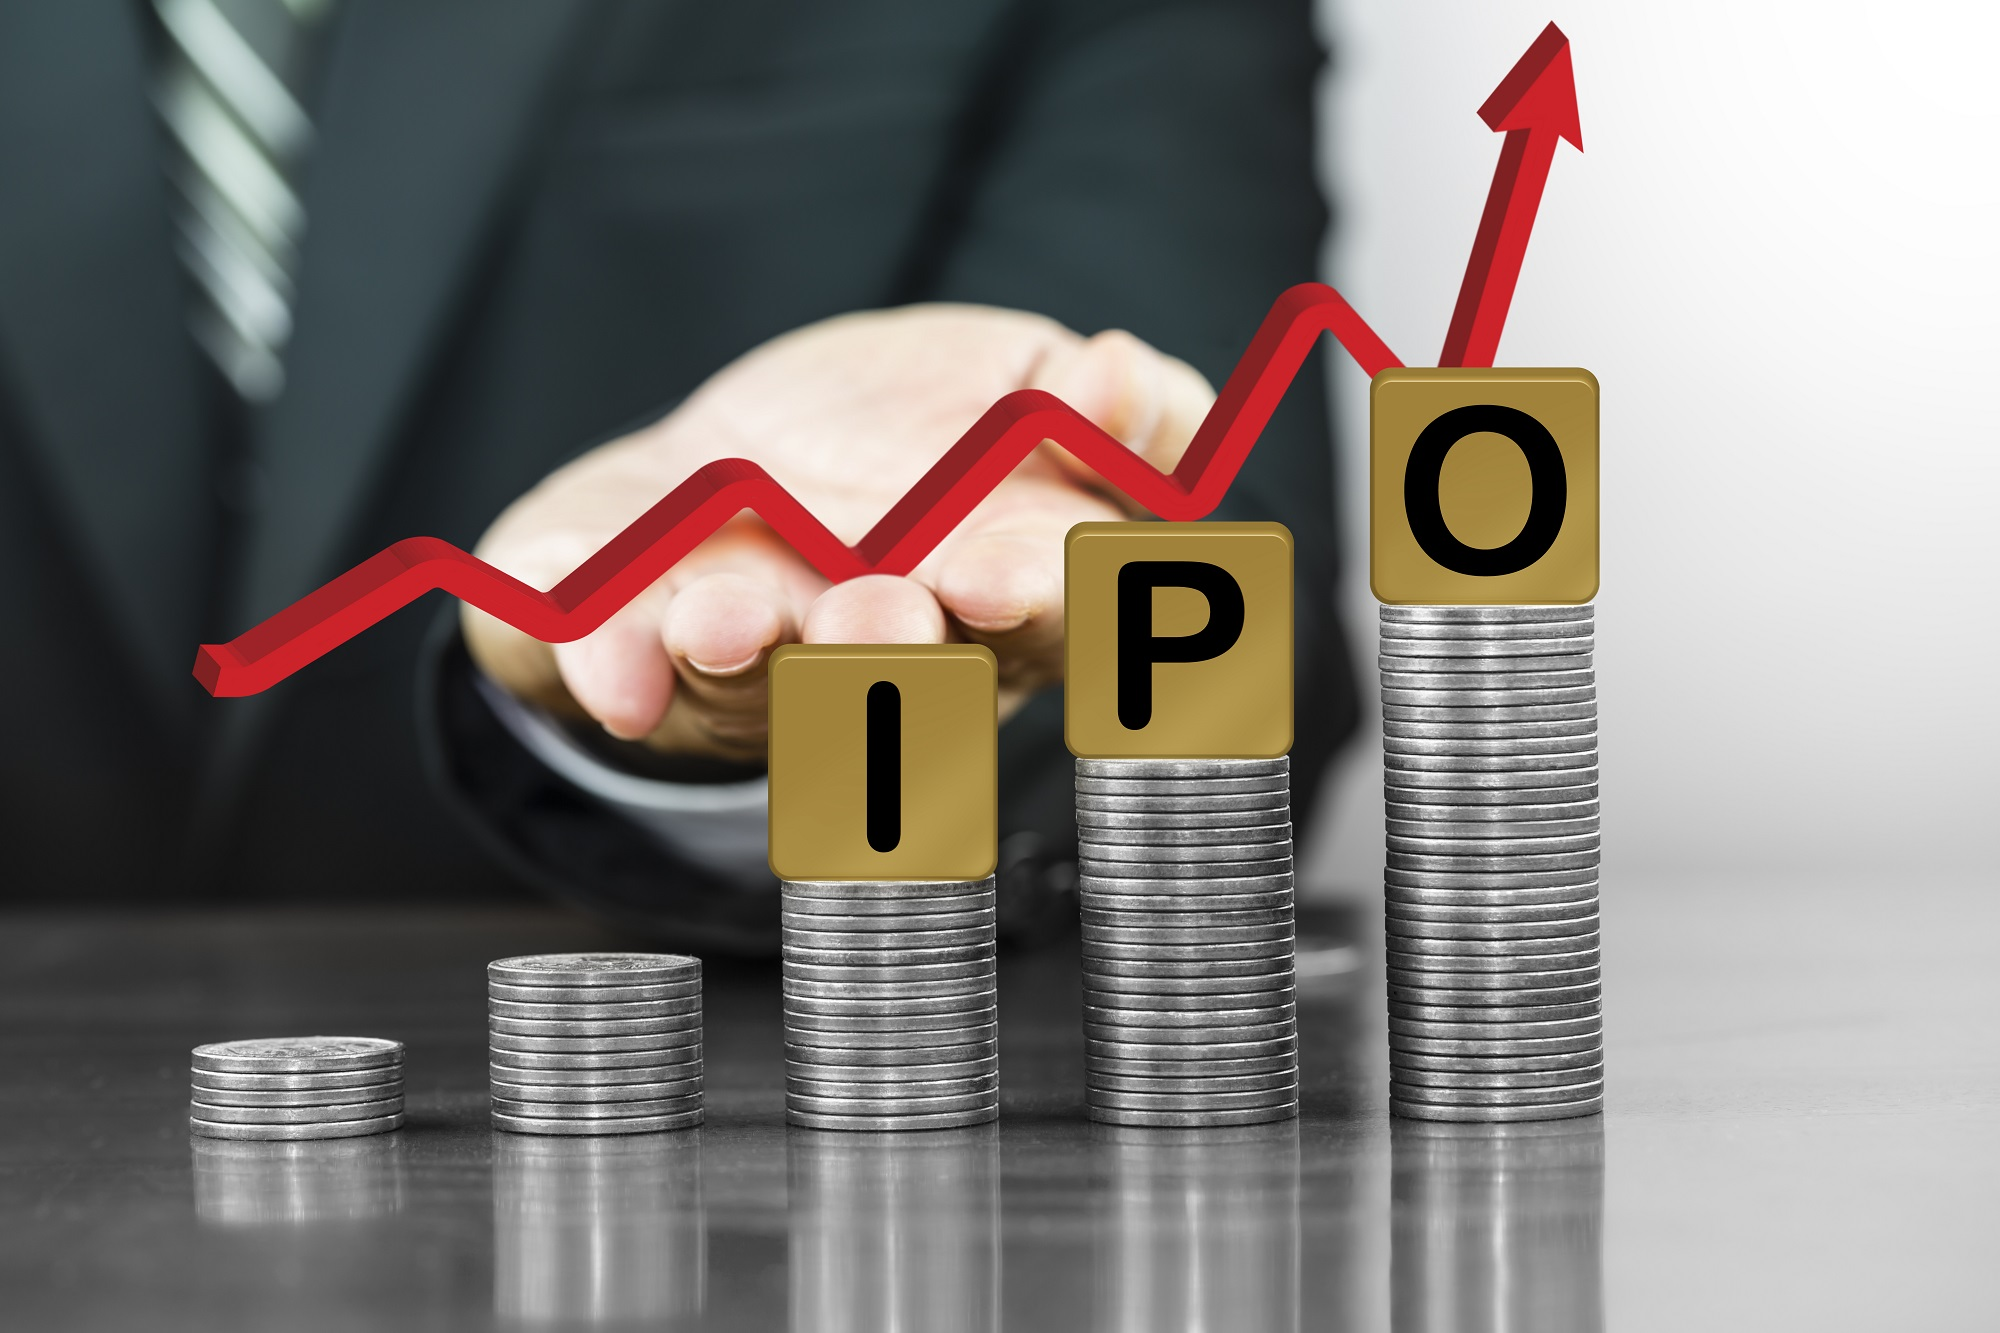 Insights into the IPO process and deciding factors when choosing a Brazil or US listing